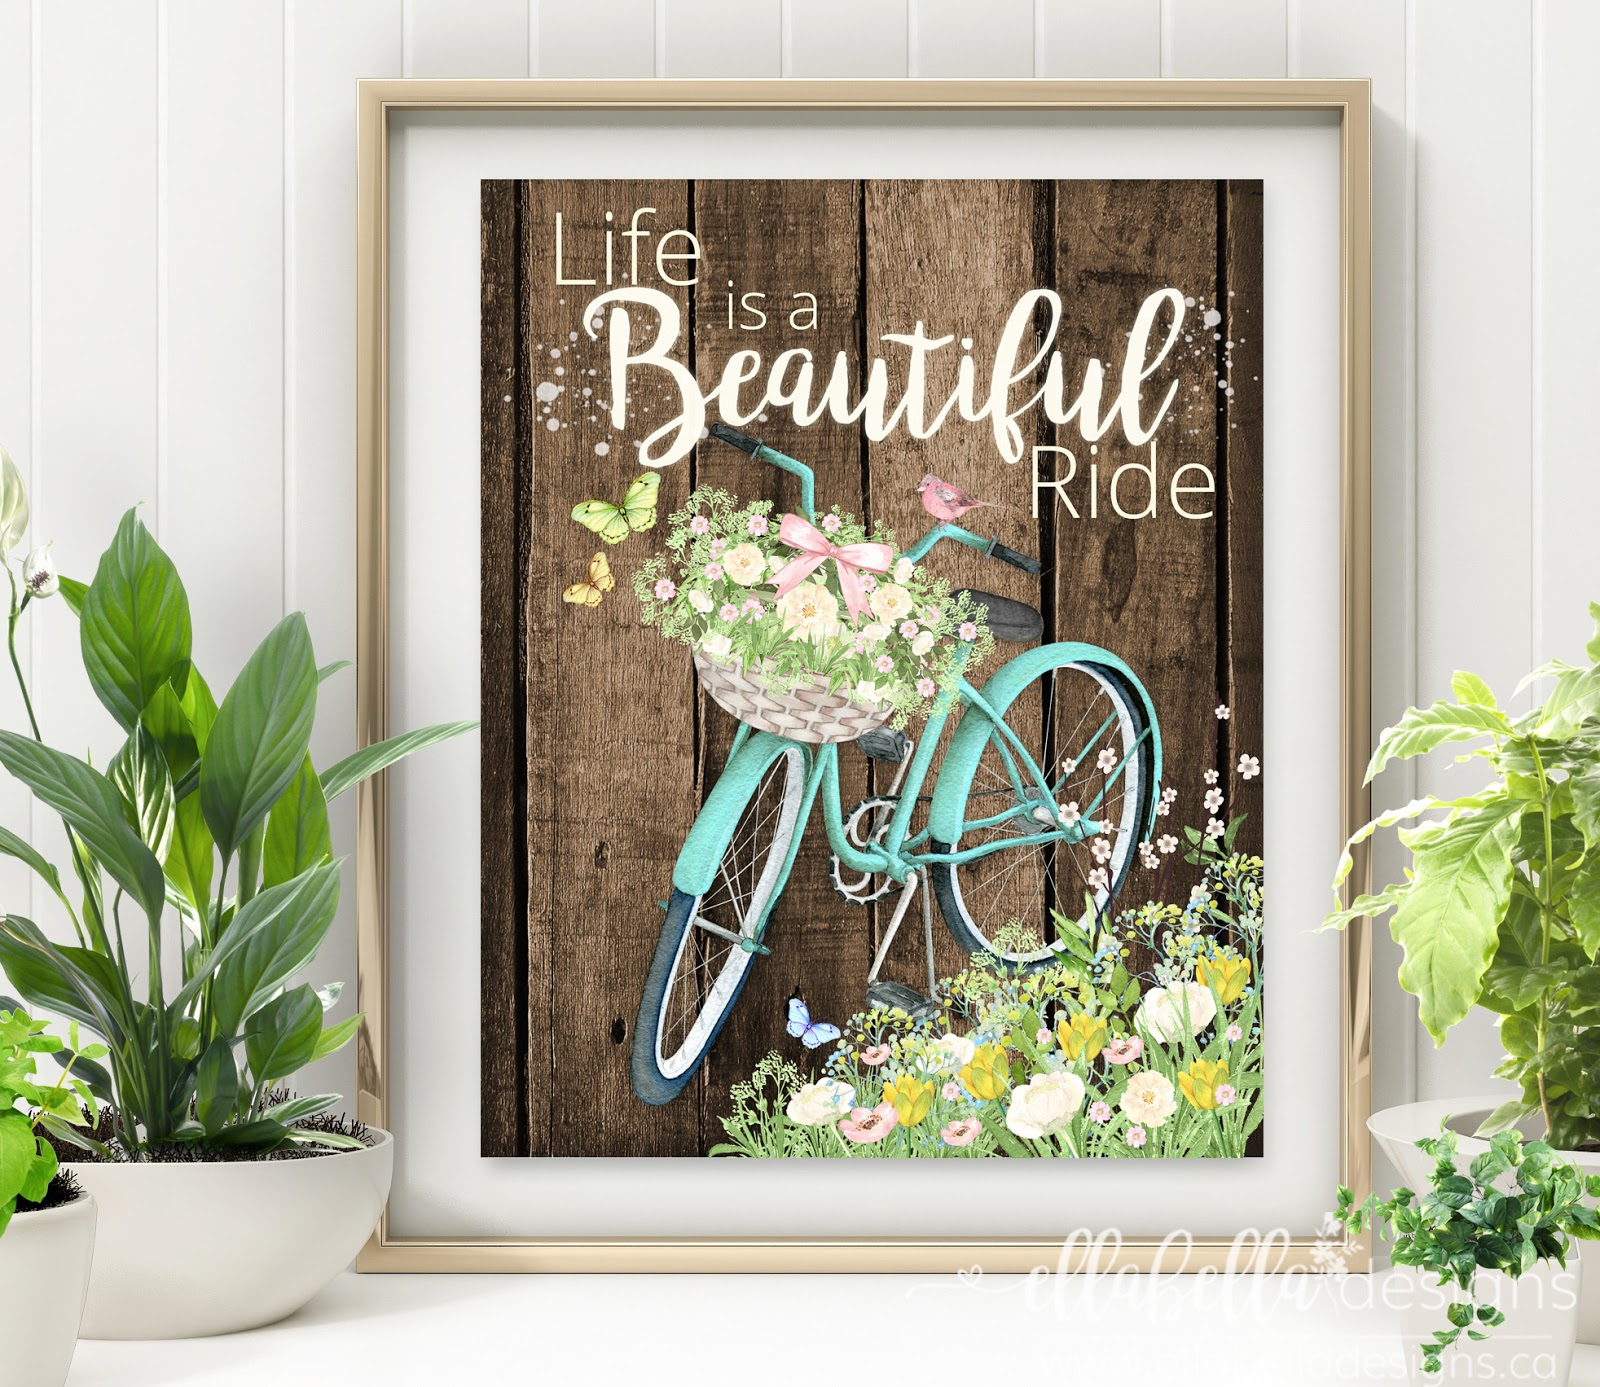 Ellabella Designs: EASTER & SPRING WALL ART PRINTABLES